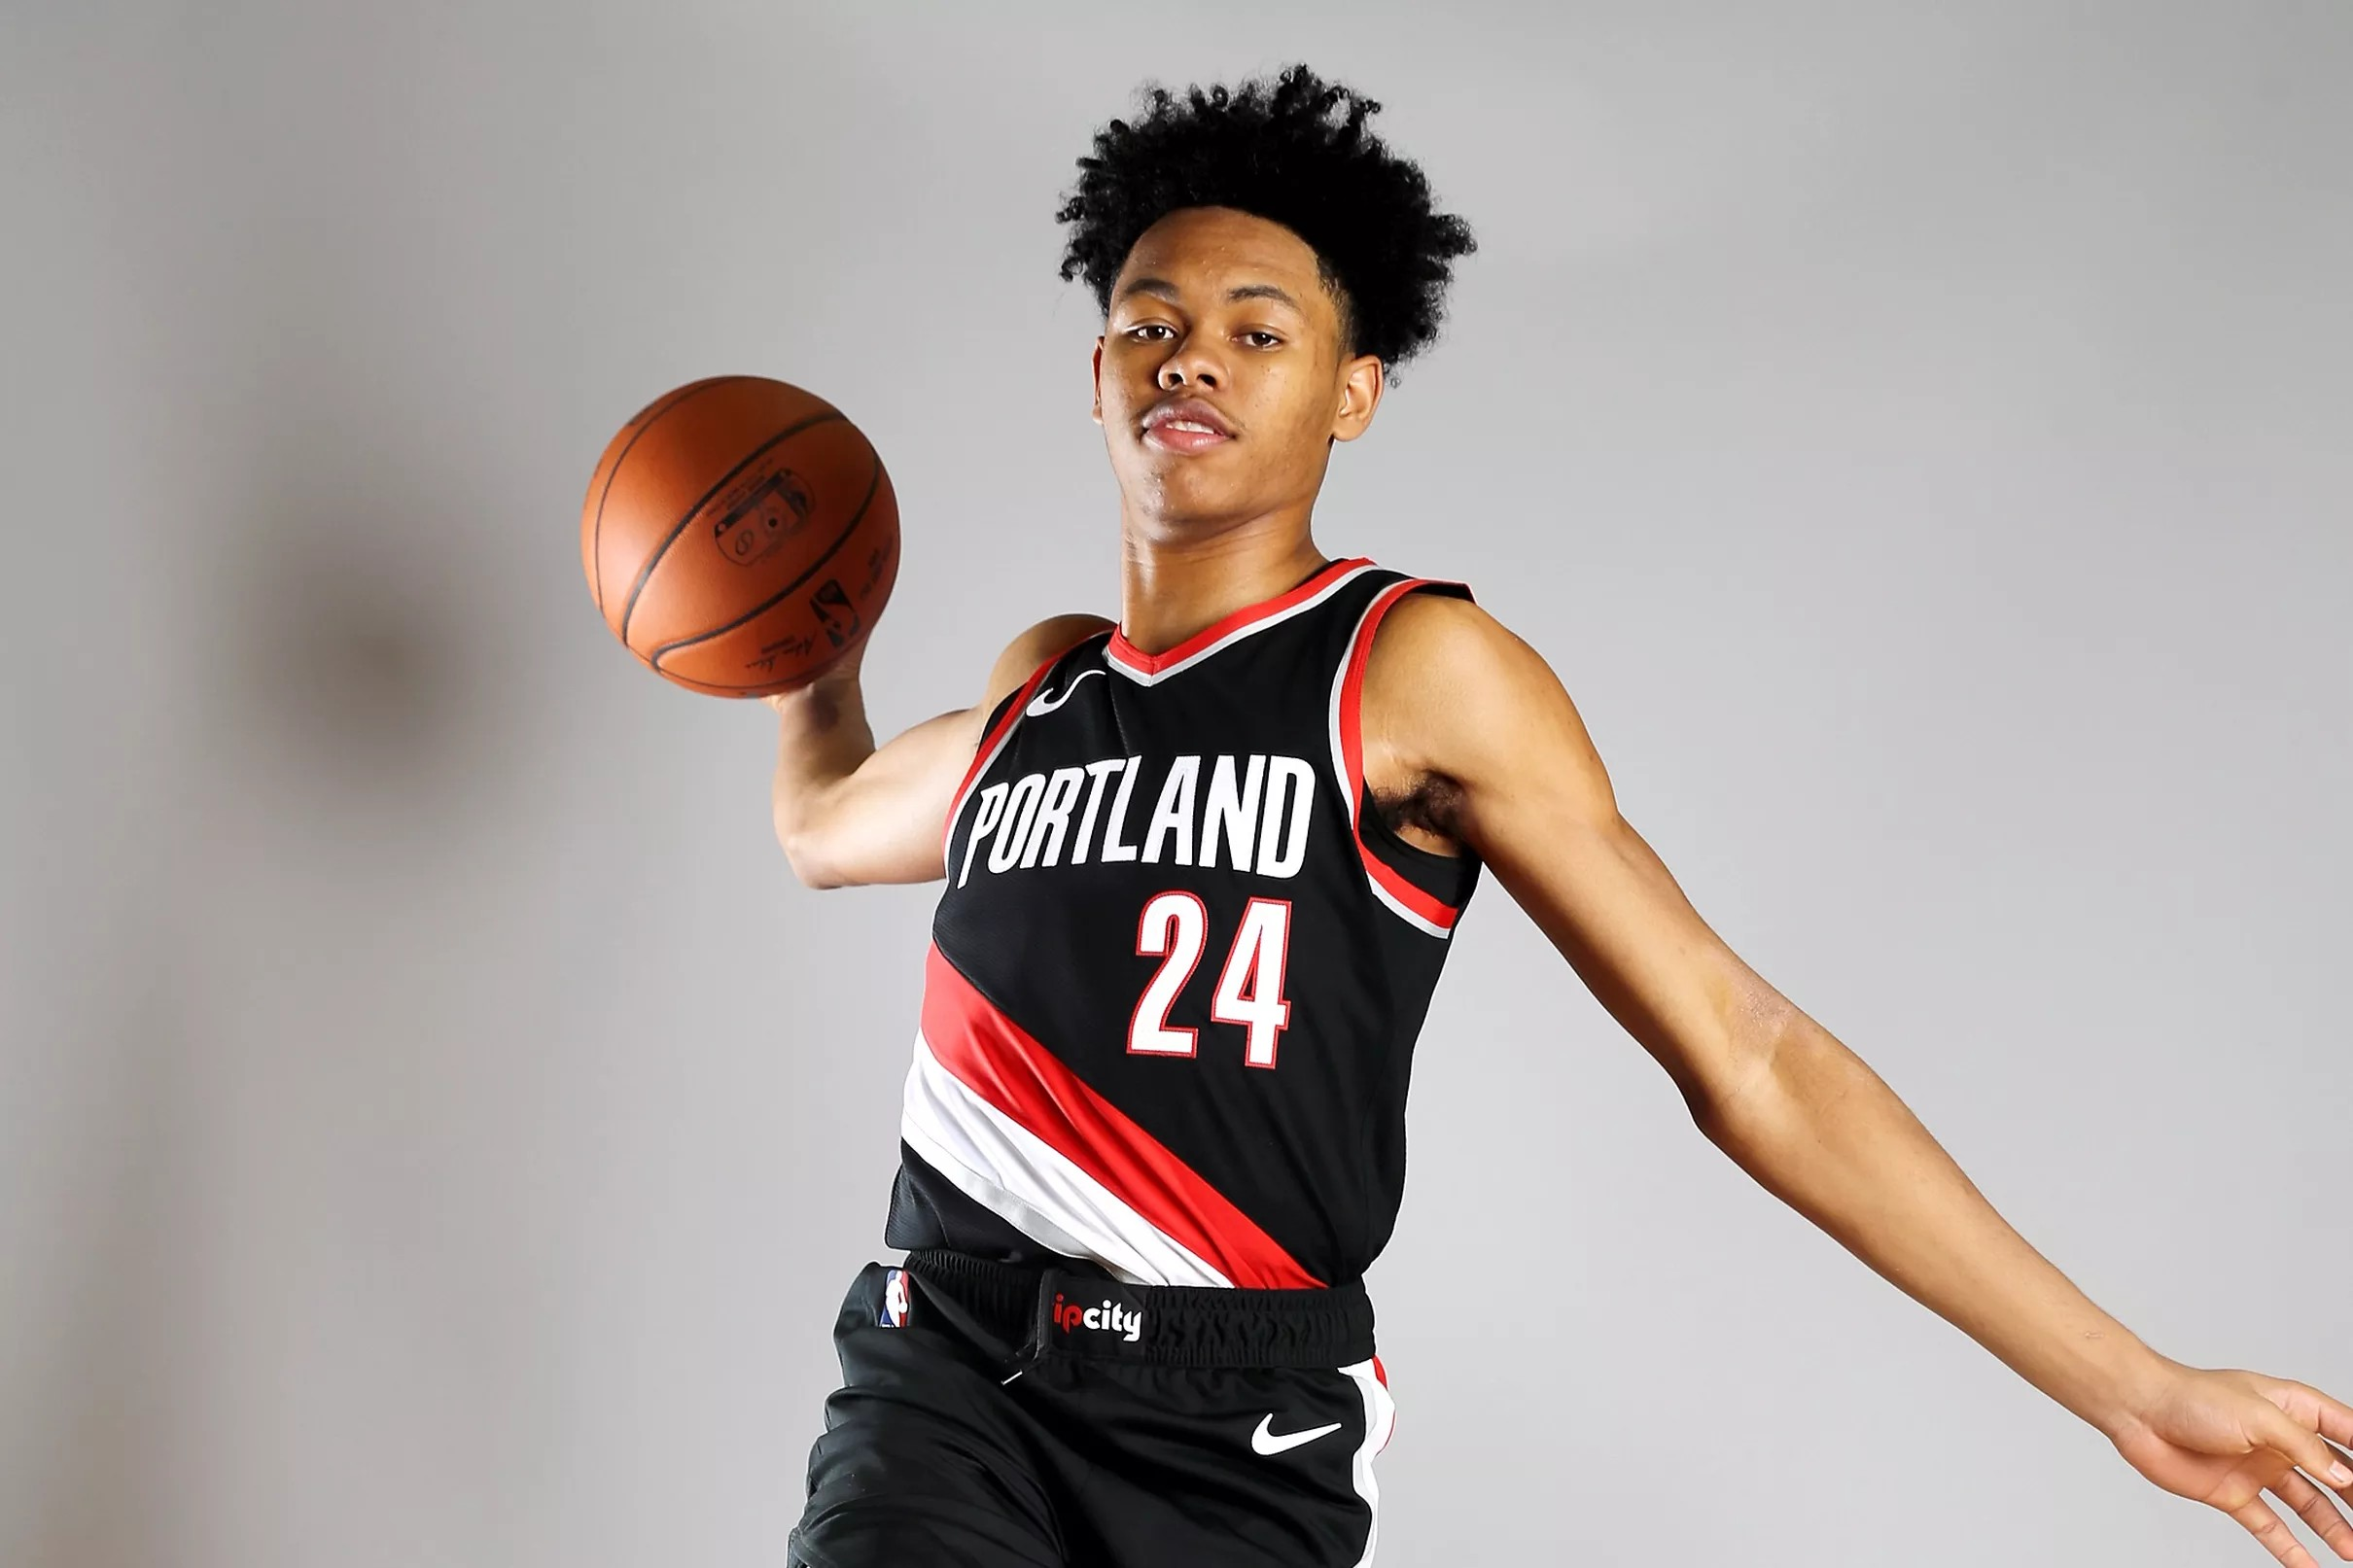 finest selection fa306 bf31a Trail Blazers Rookie Anfernee Simons Discusses Summer ...